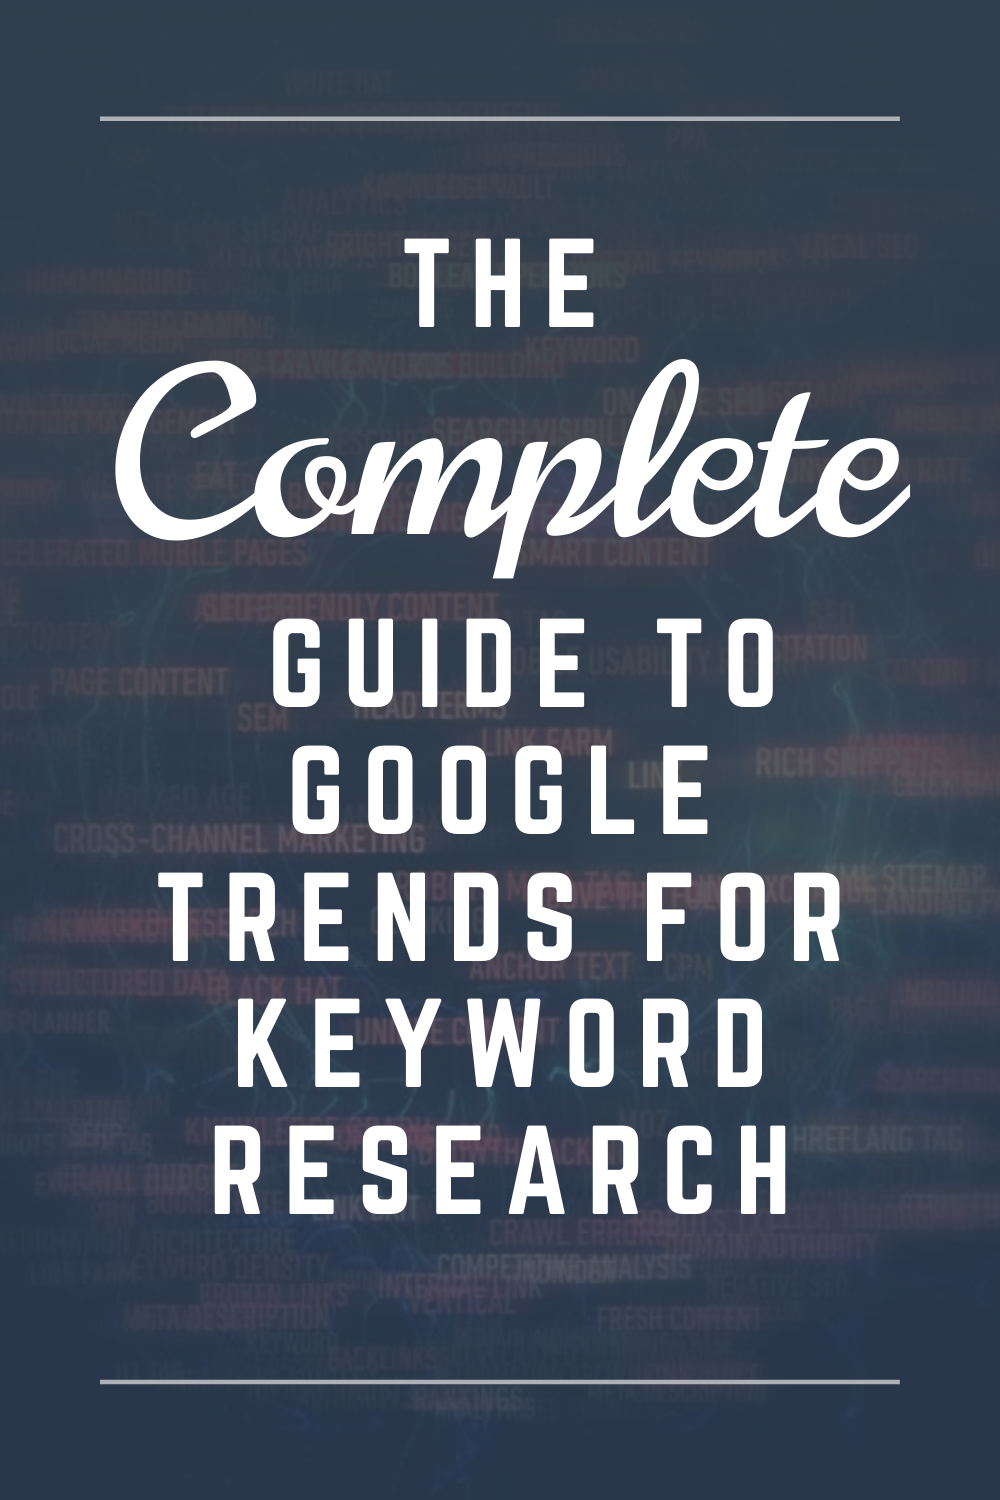 The Complete Guide to Google Trends for Keyword Research